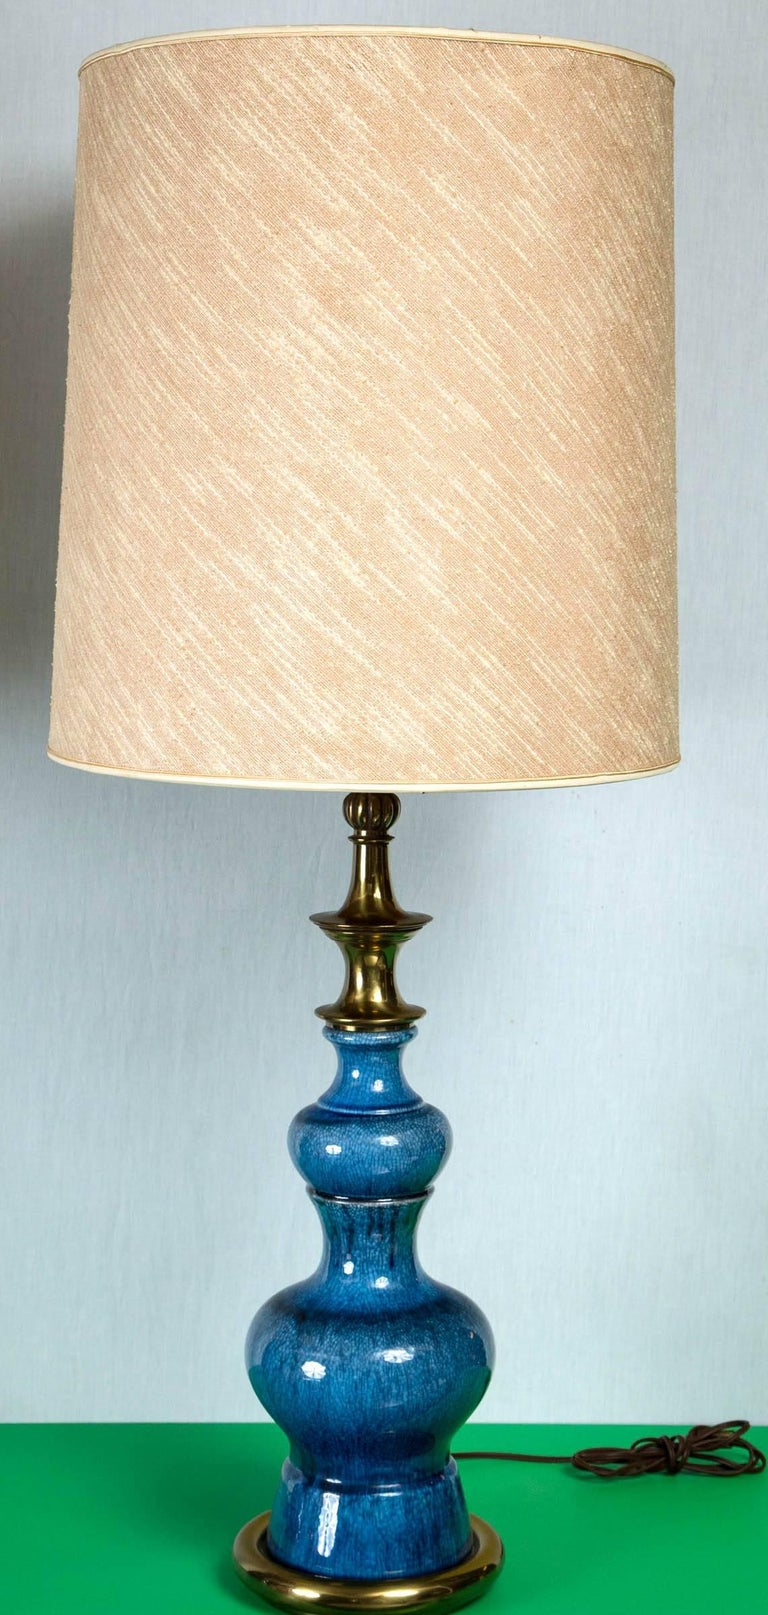 Pair of exquisite blue ceramic Stiffel lamps in a pagoda shape. Original shades included as in photos. Height is to top of finial.